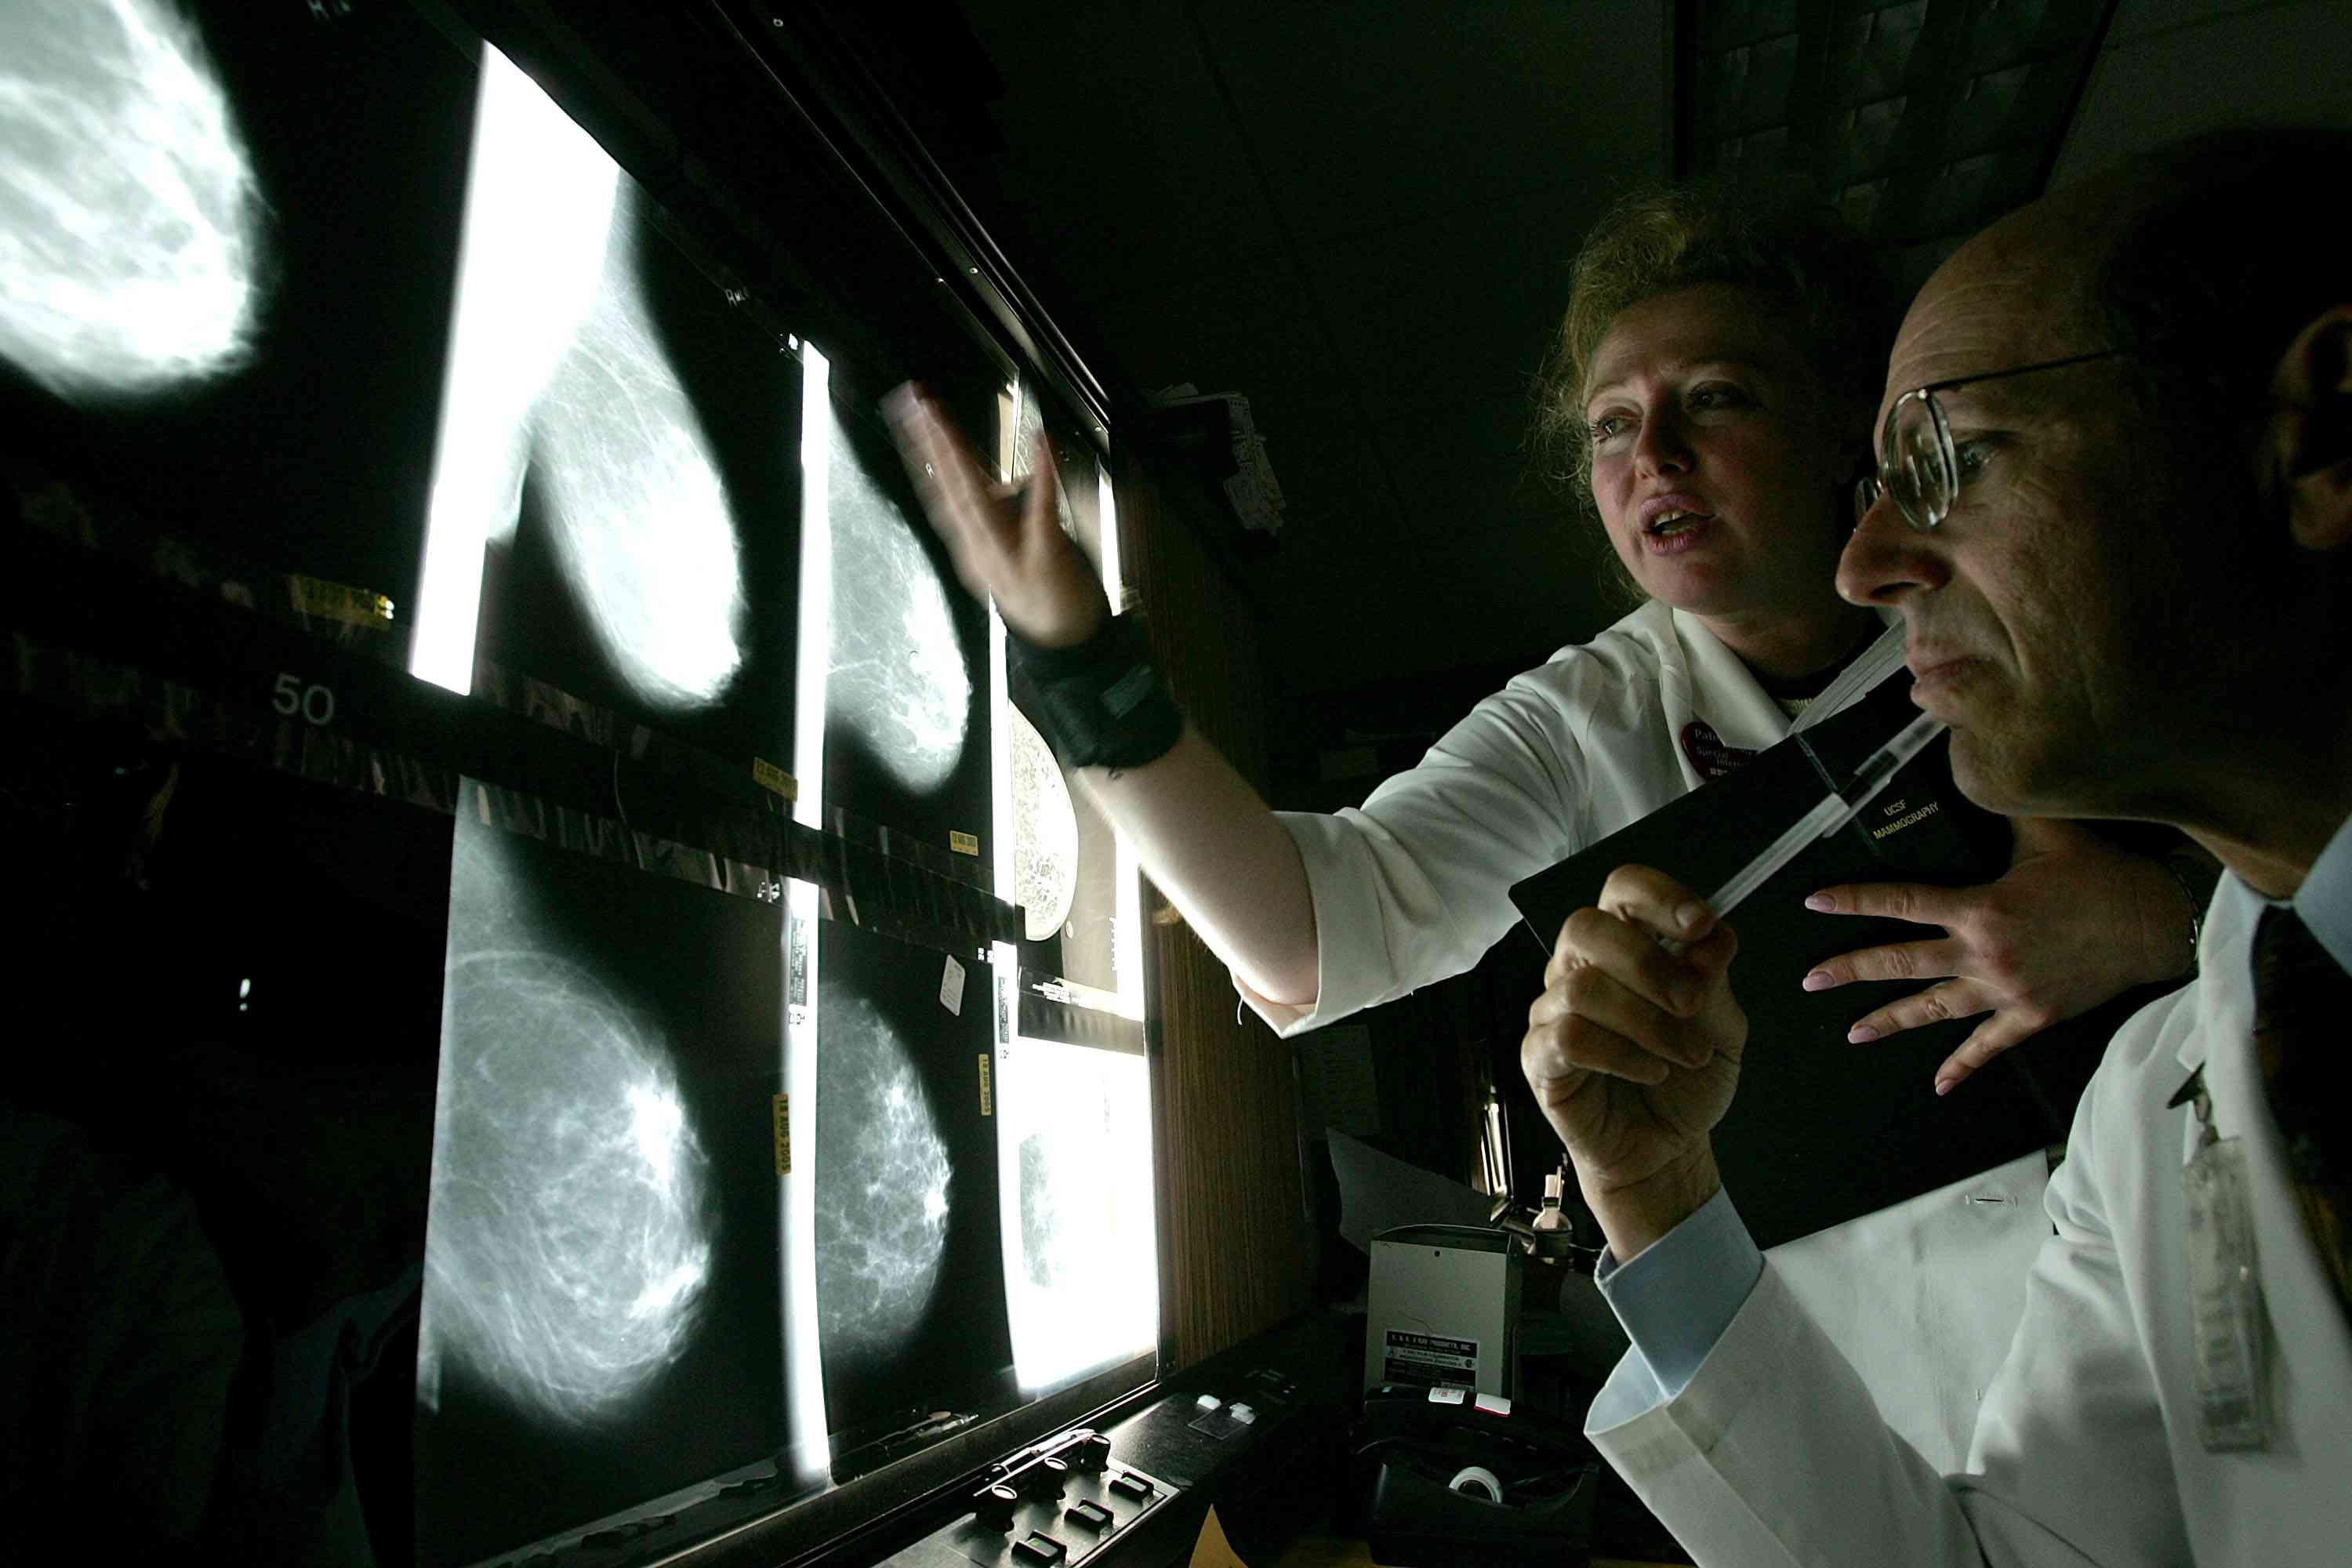 Doctors looking at a breast X-Ray